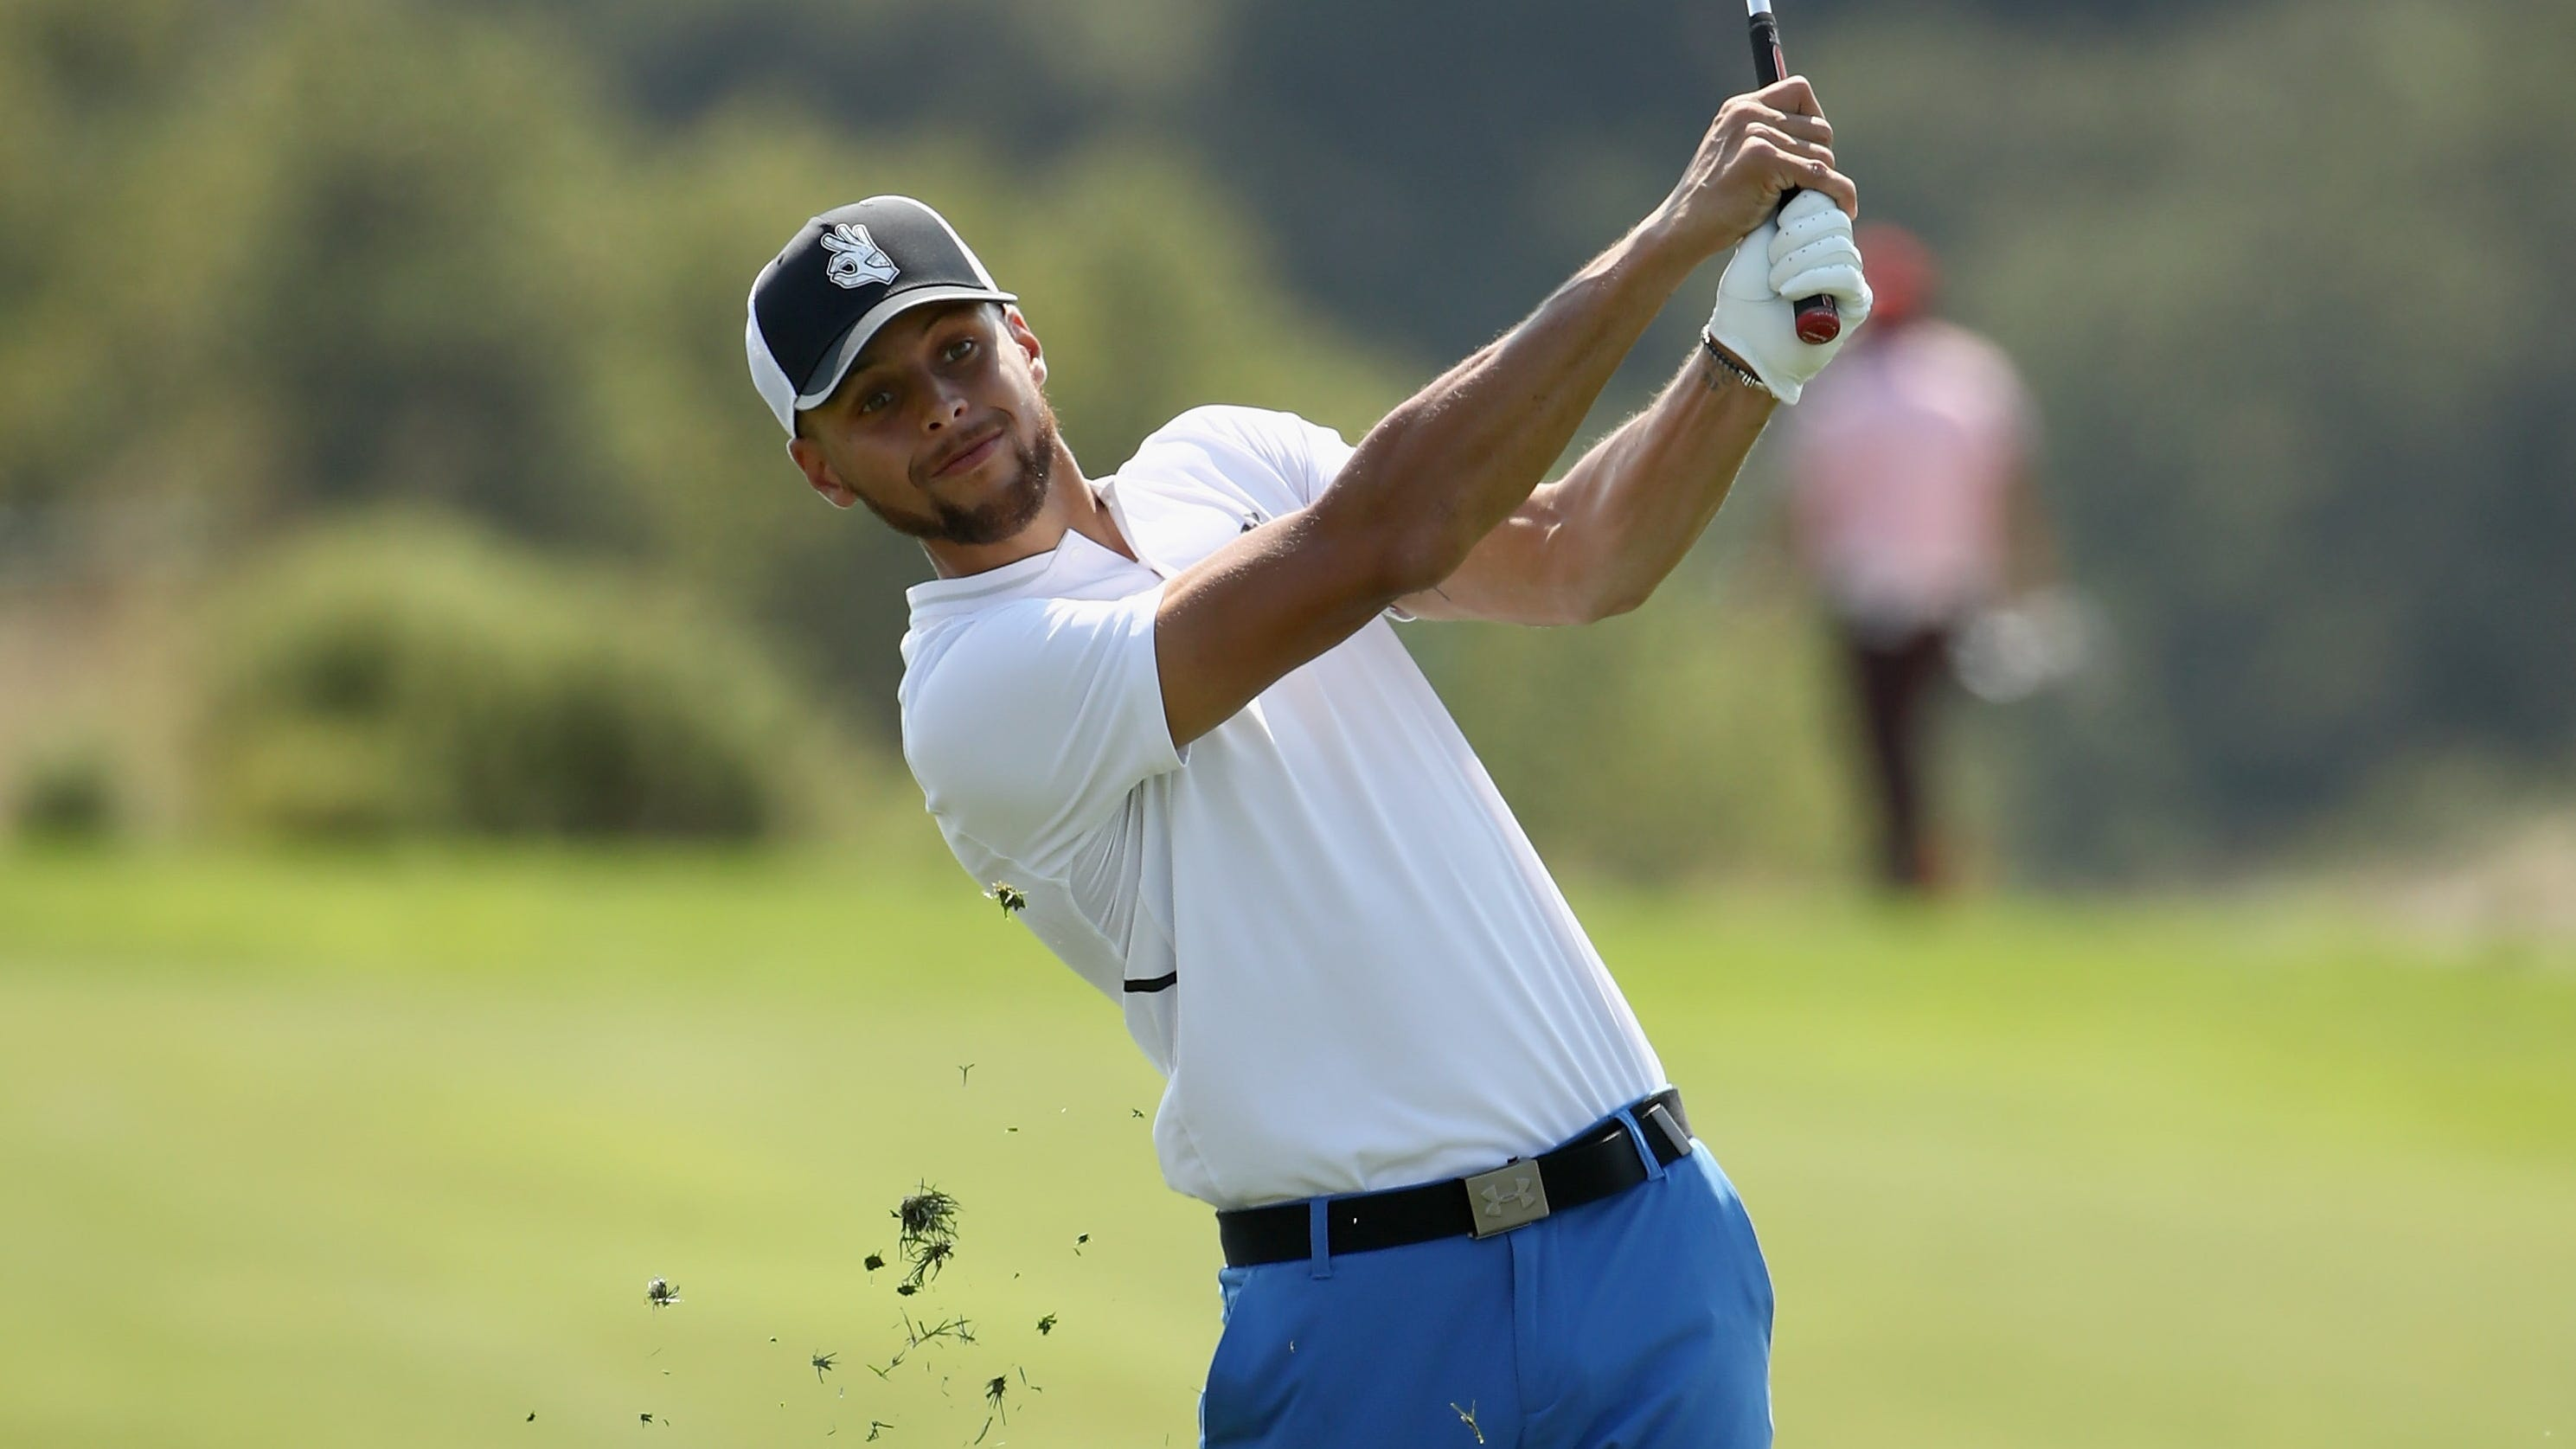 Steph Curry ends the last event on the Web.com Tour